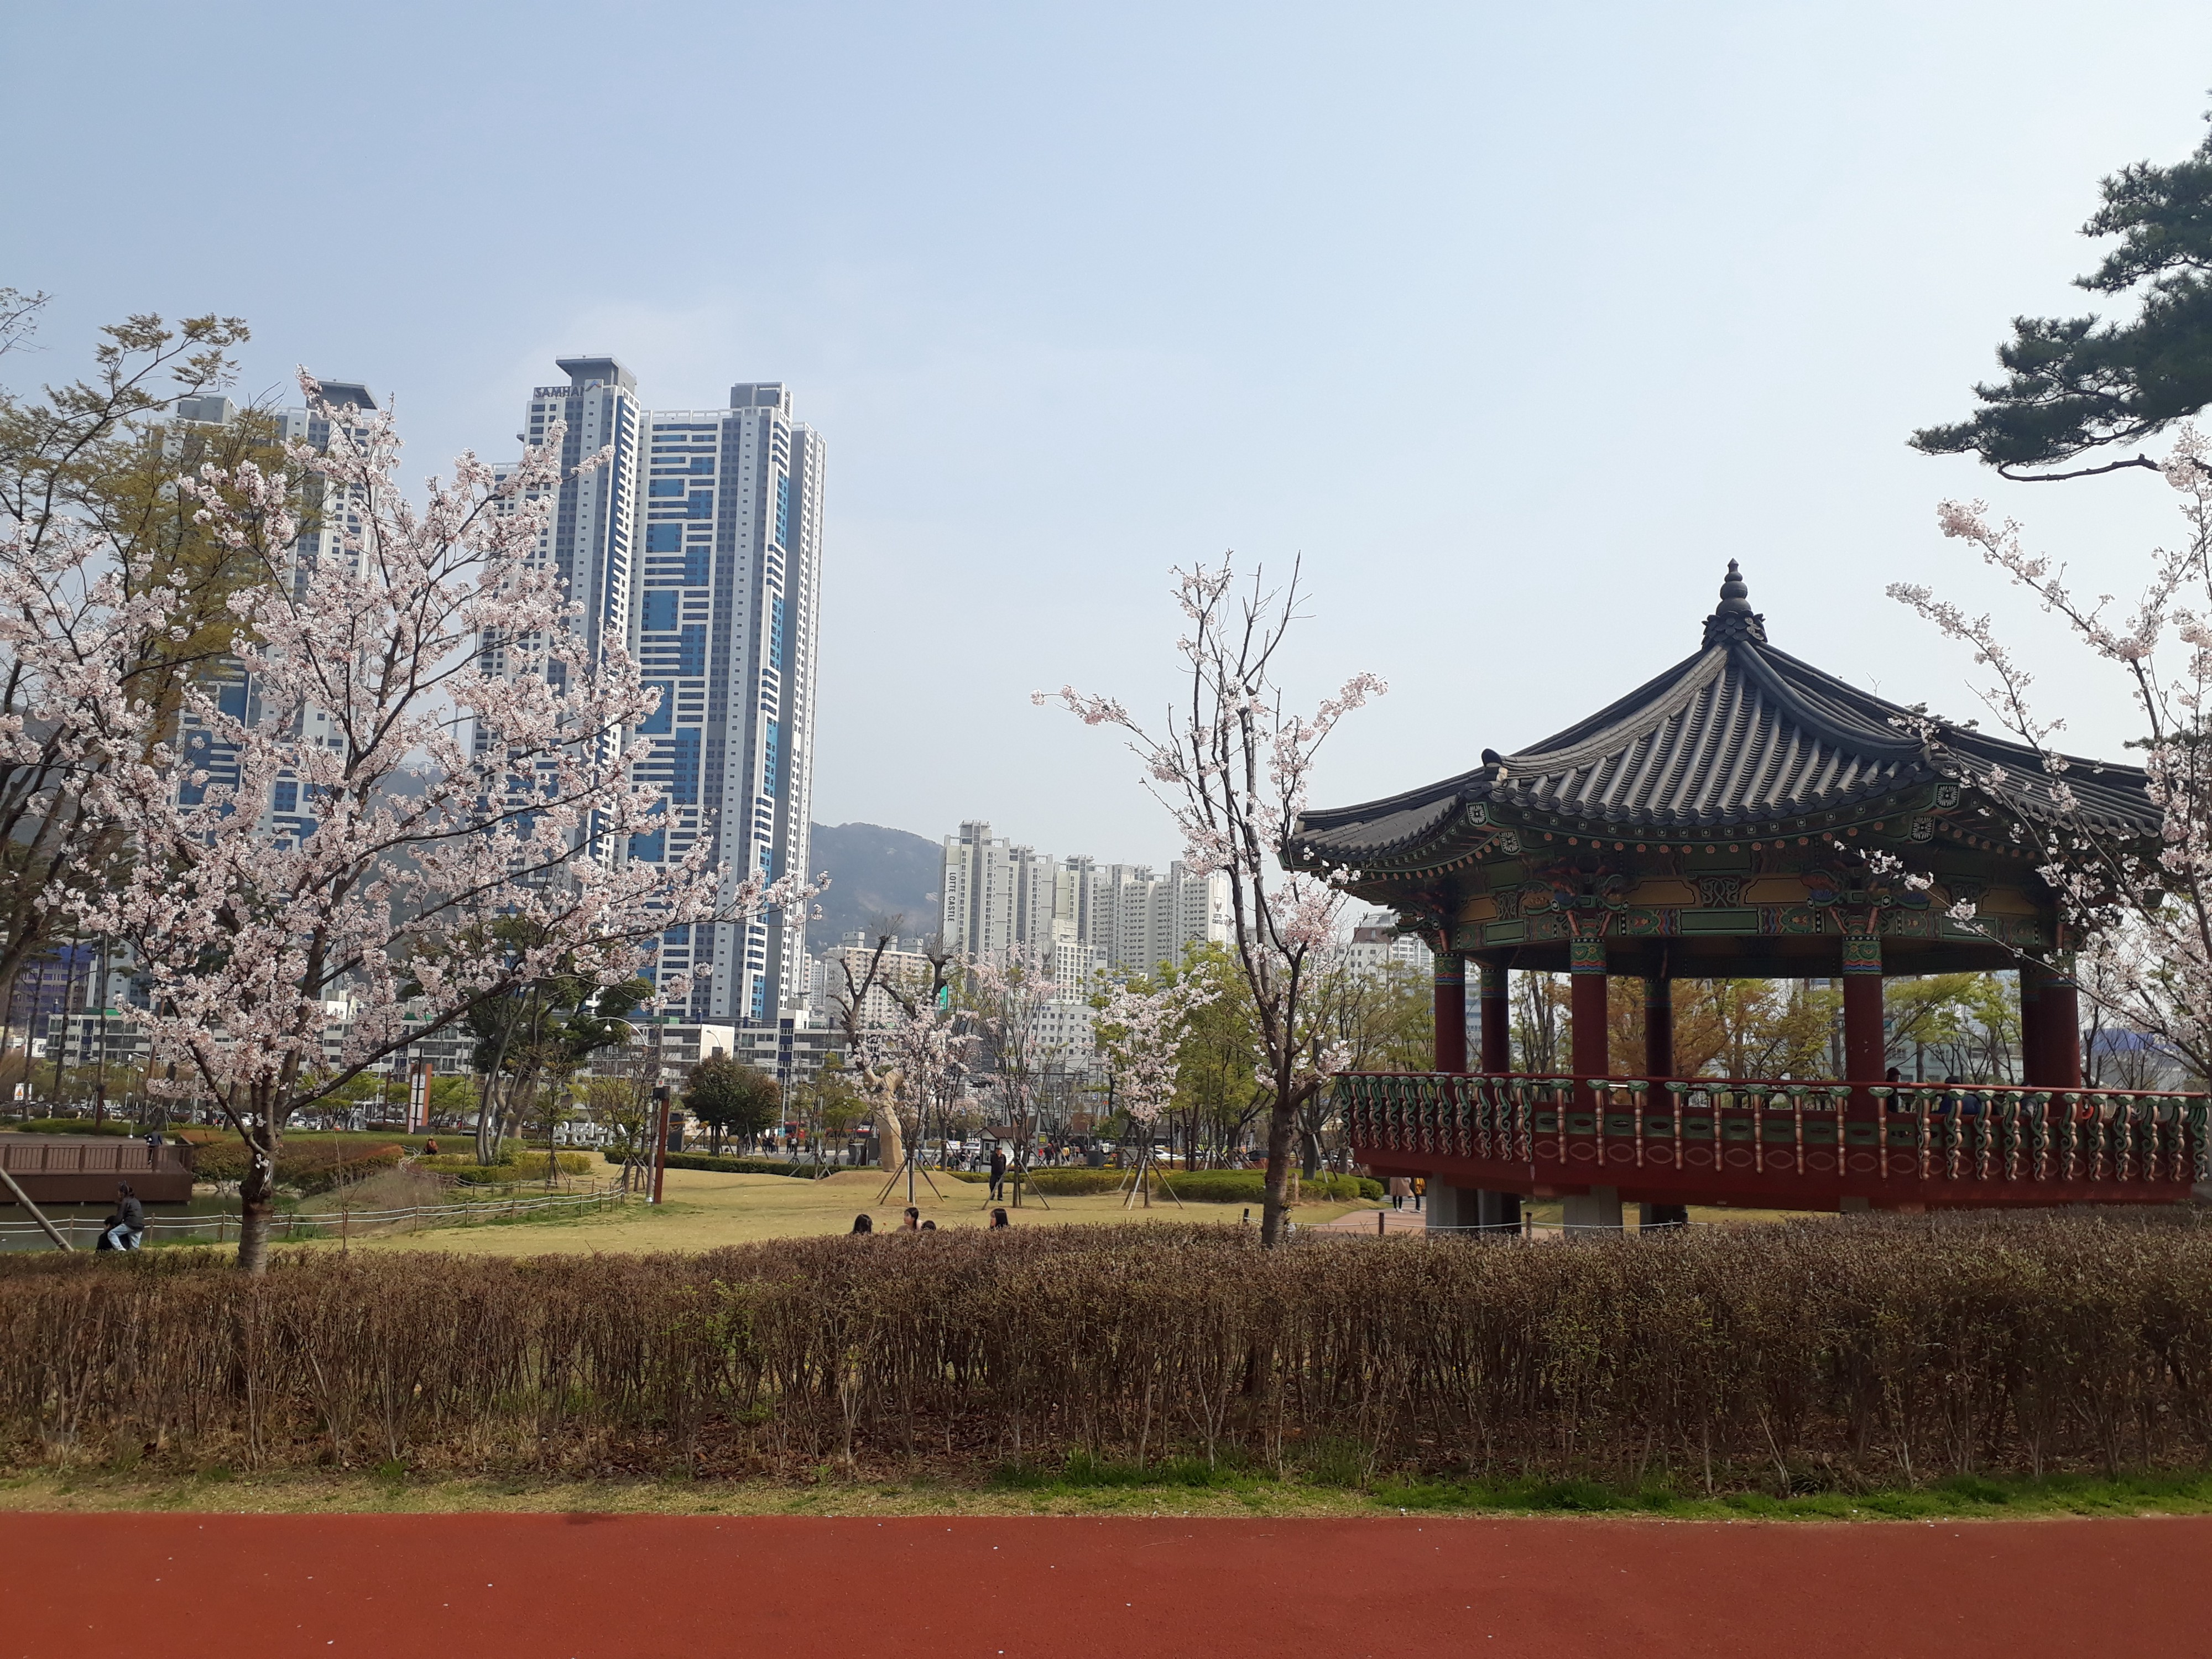 Cherry trees bloom in front of a pagoda. Tall apartment buildings can be seen in the distance.